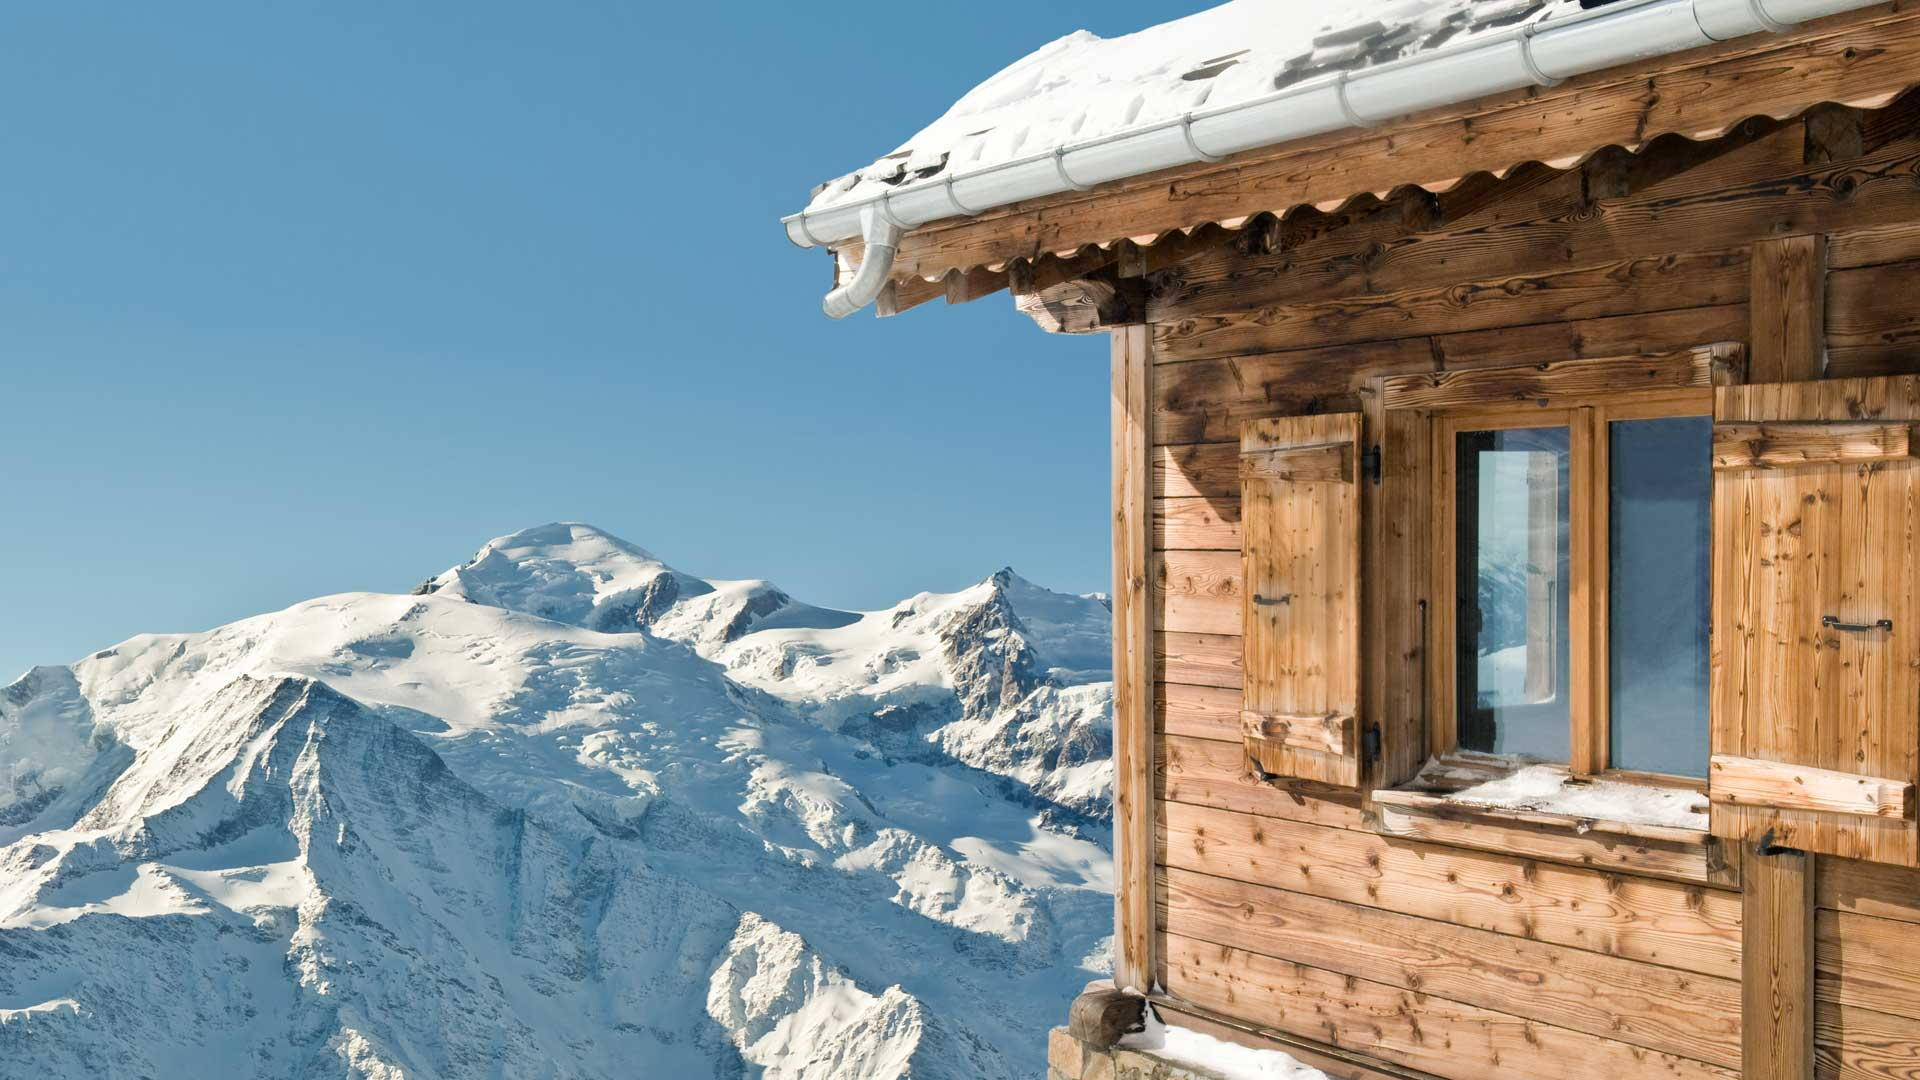 Luxury Chalets In Crans Montana Your Swiss Alp Dreams Come True